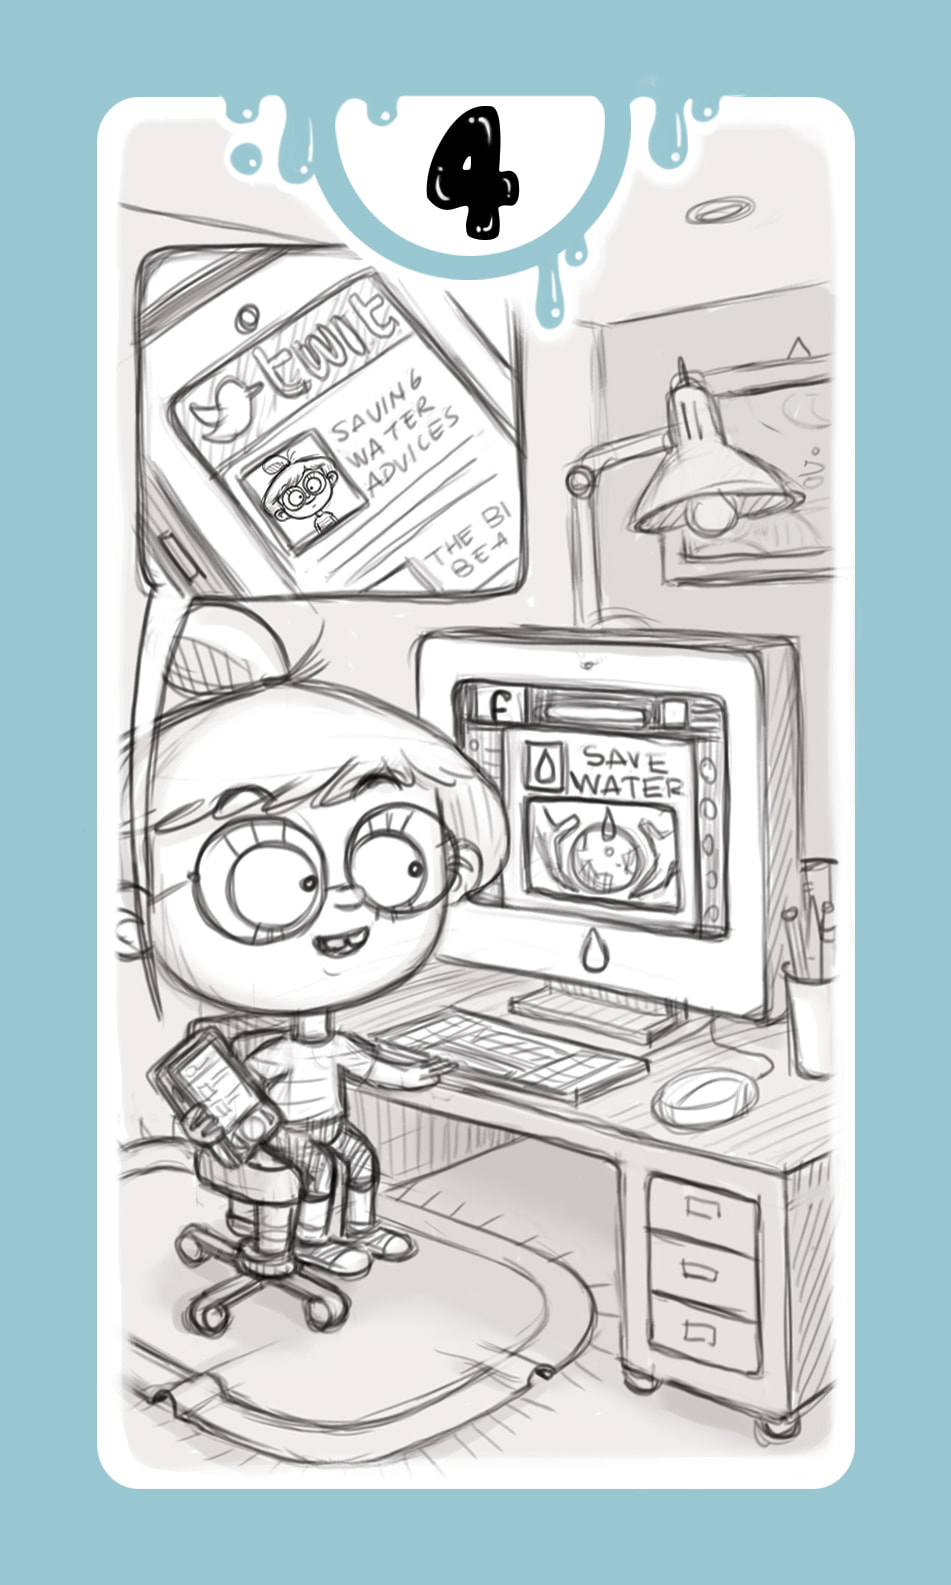 black and white pencil sketch of a card for the game DROP! with a light blue frame and a girl tweeting tips on how to save water through her personal computer in a studio